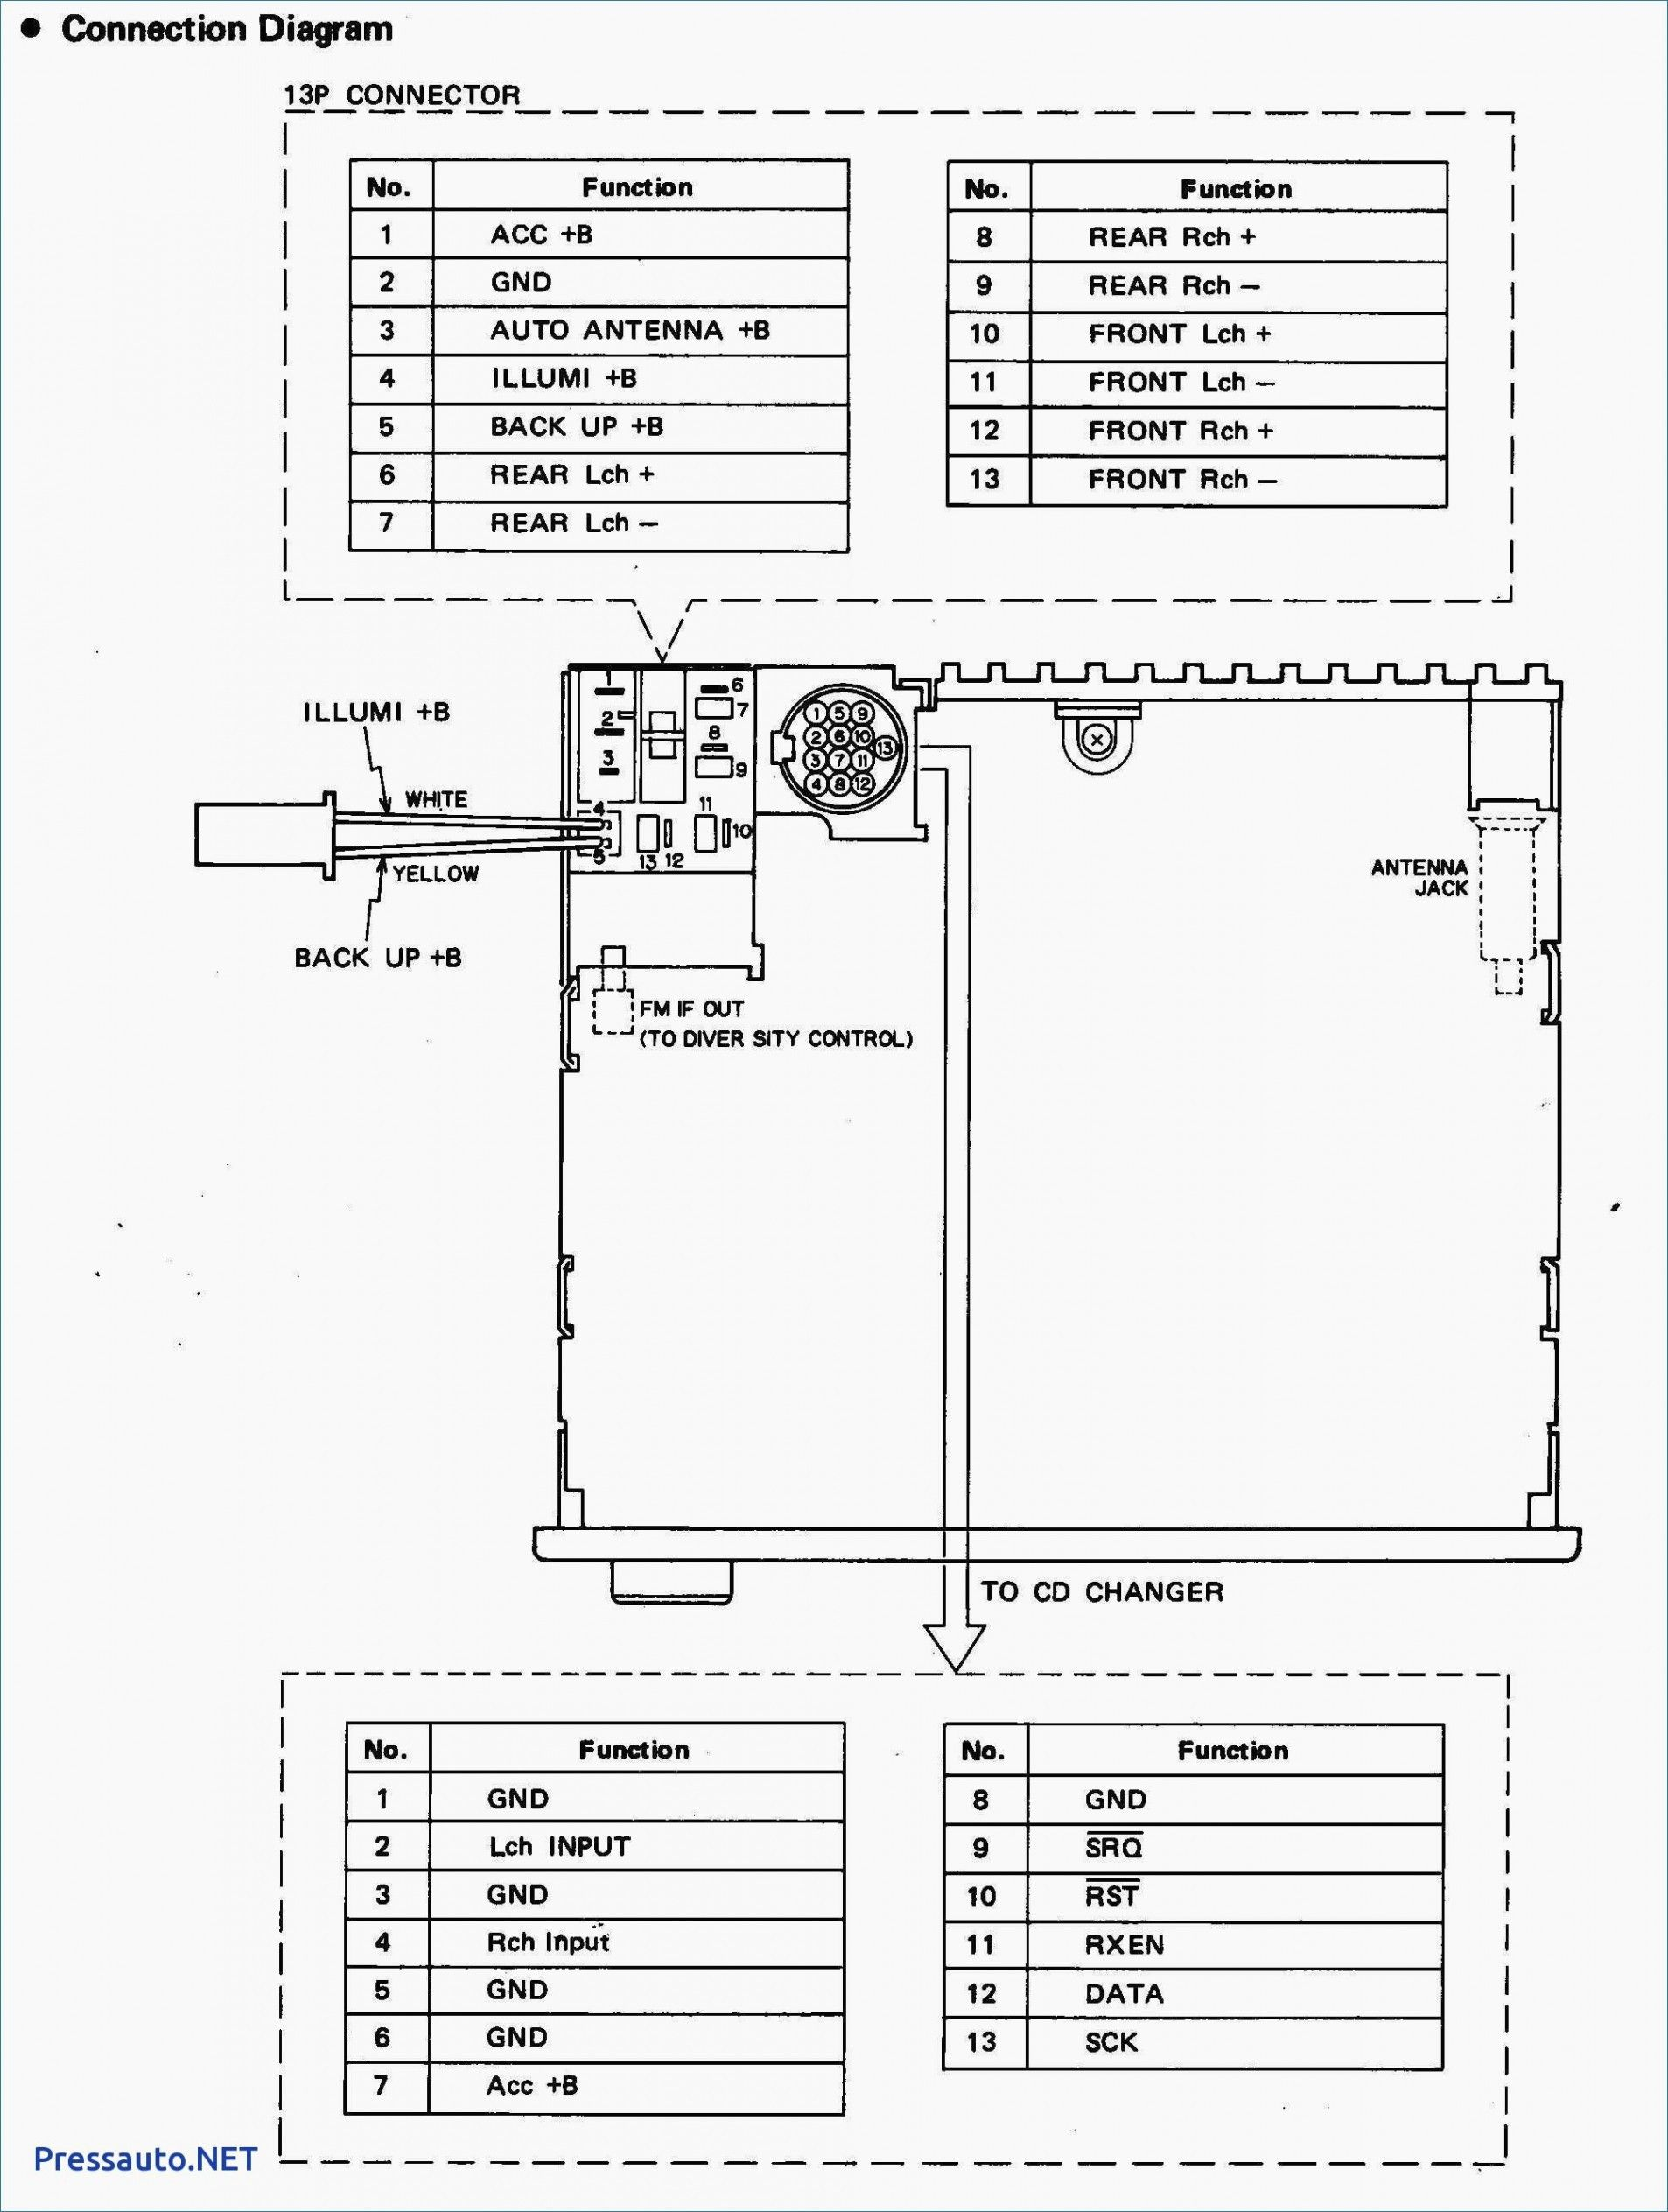 Wiring Diagram Car Stereo Http Bookingritzcarlton Info Wiring Diagram Car Stereo Diagram Bmw E46 Manual Car